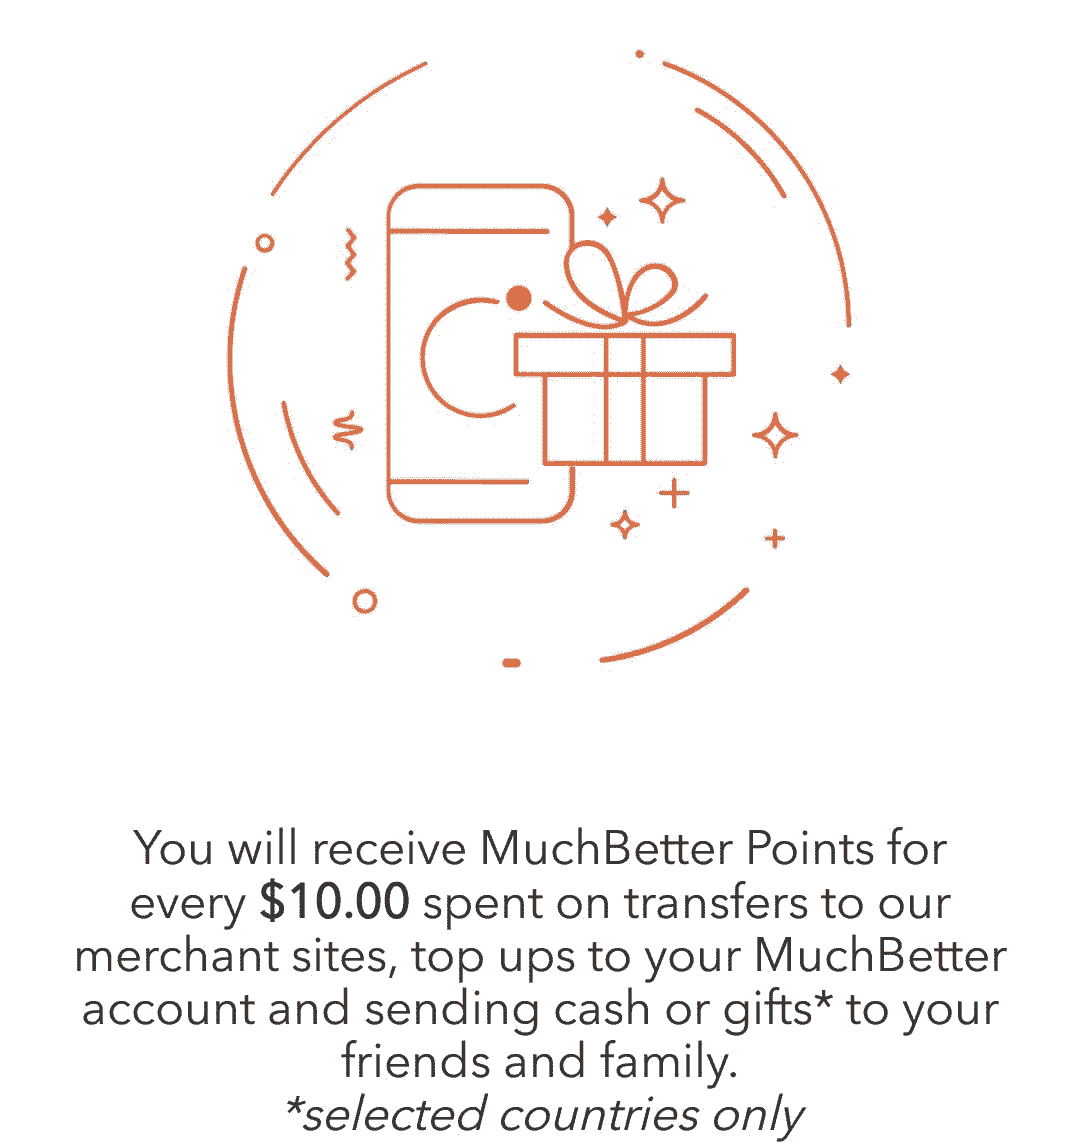 Muchbetter points Earned on Merchant Sites